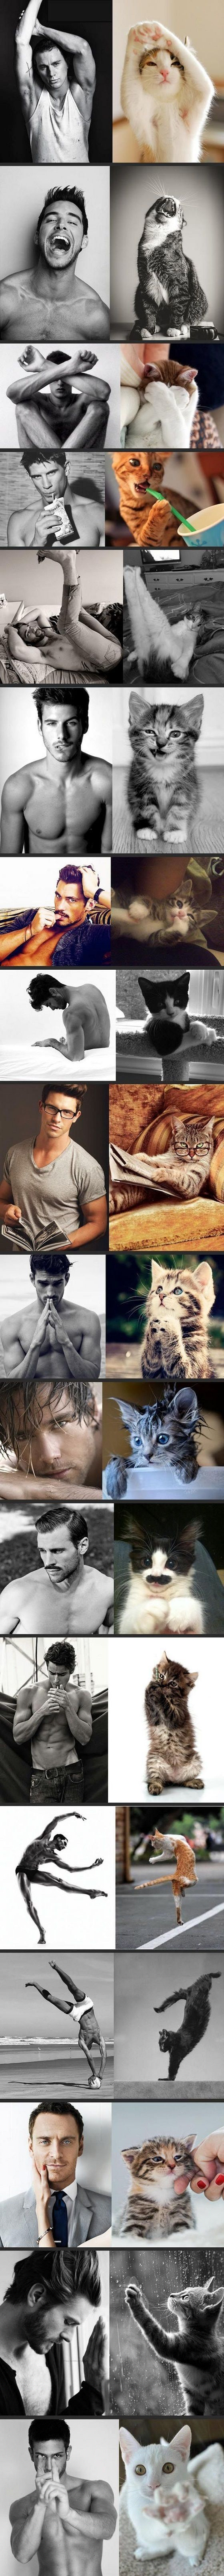 Can you spot the difference between these hot guys and cats?